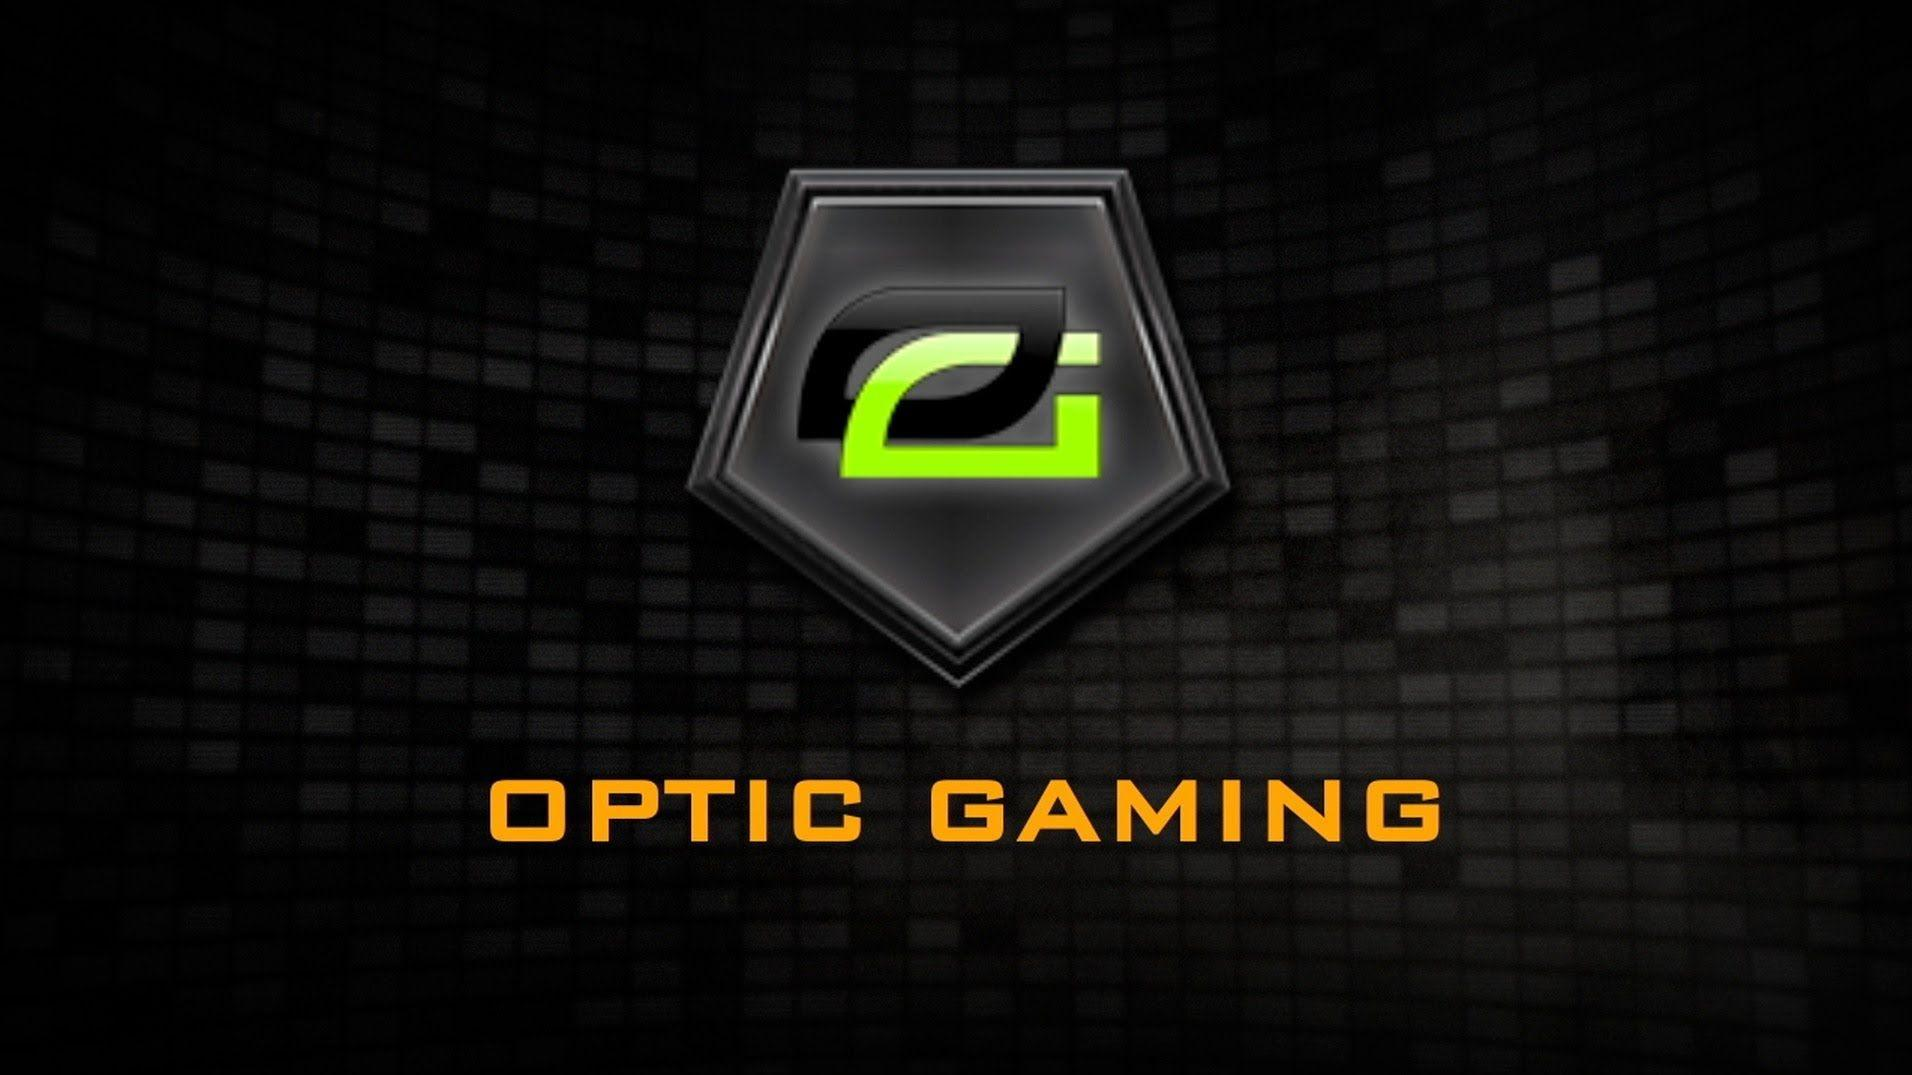 optic gaming wallpapers HD